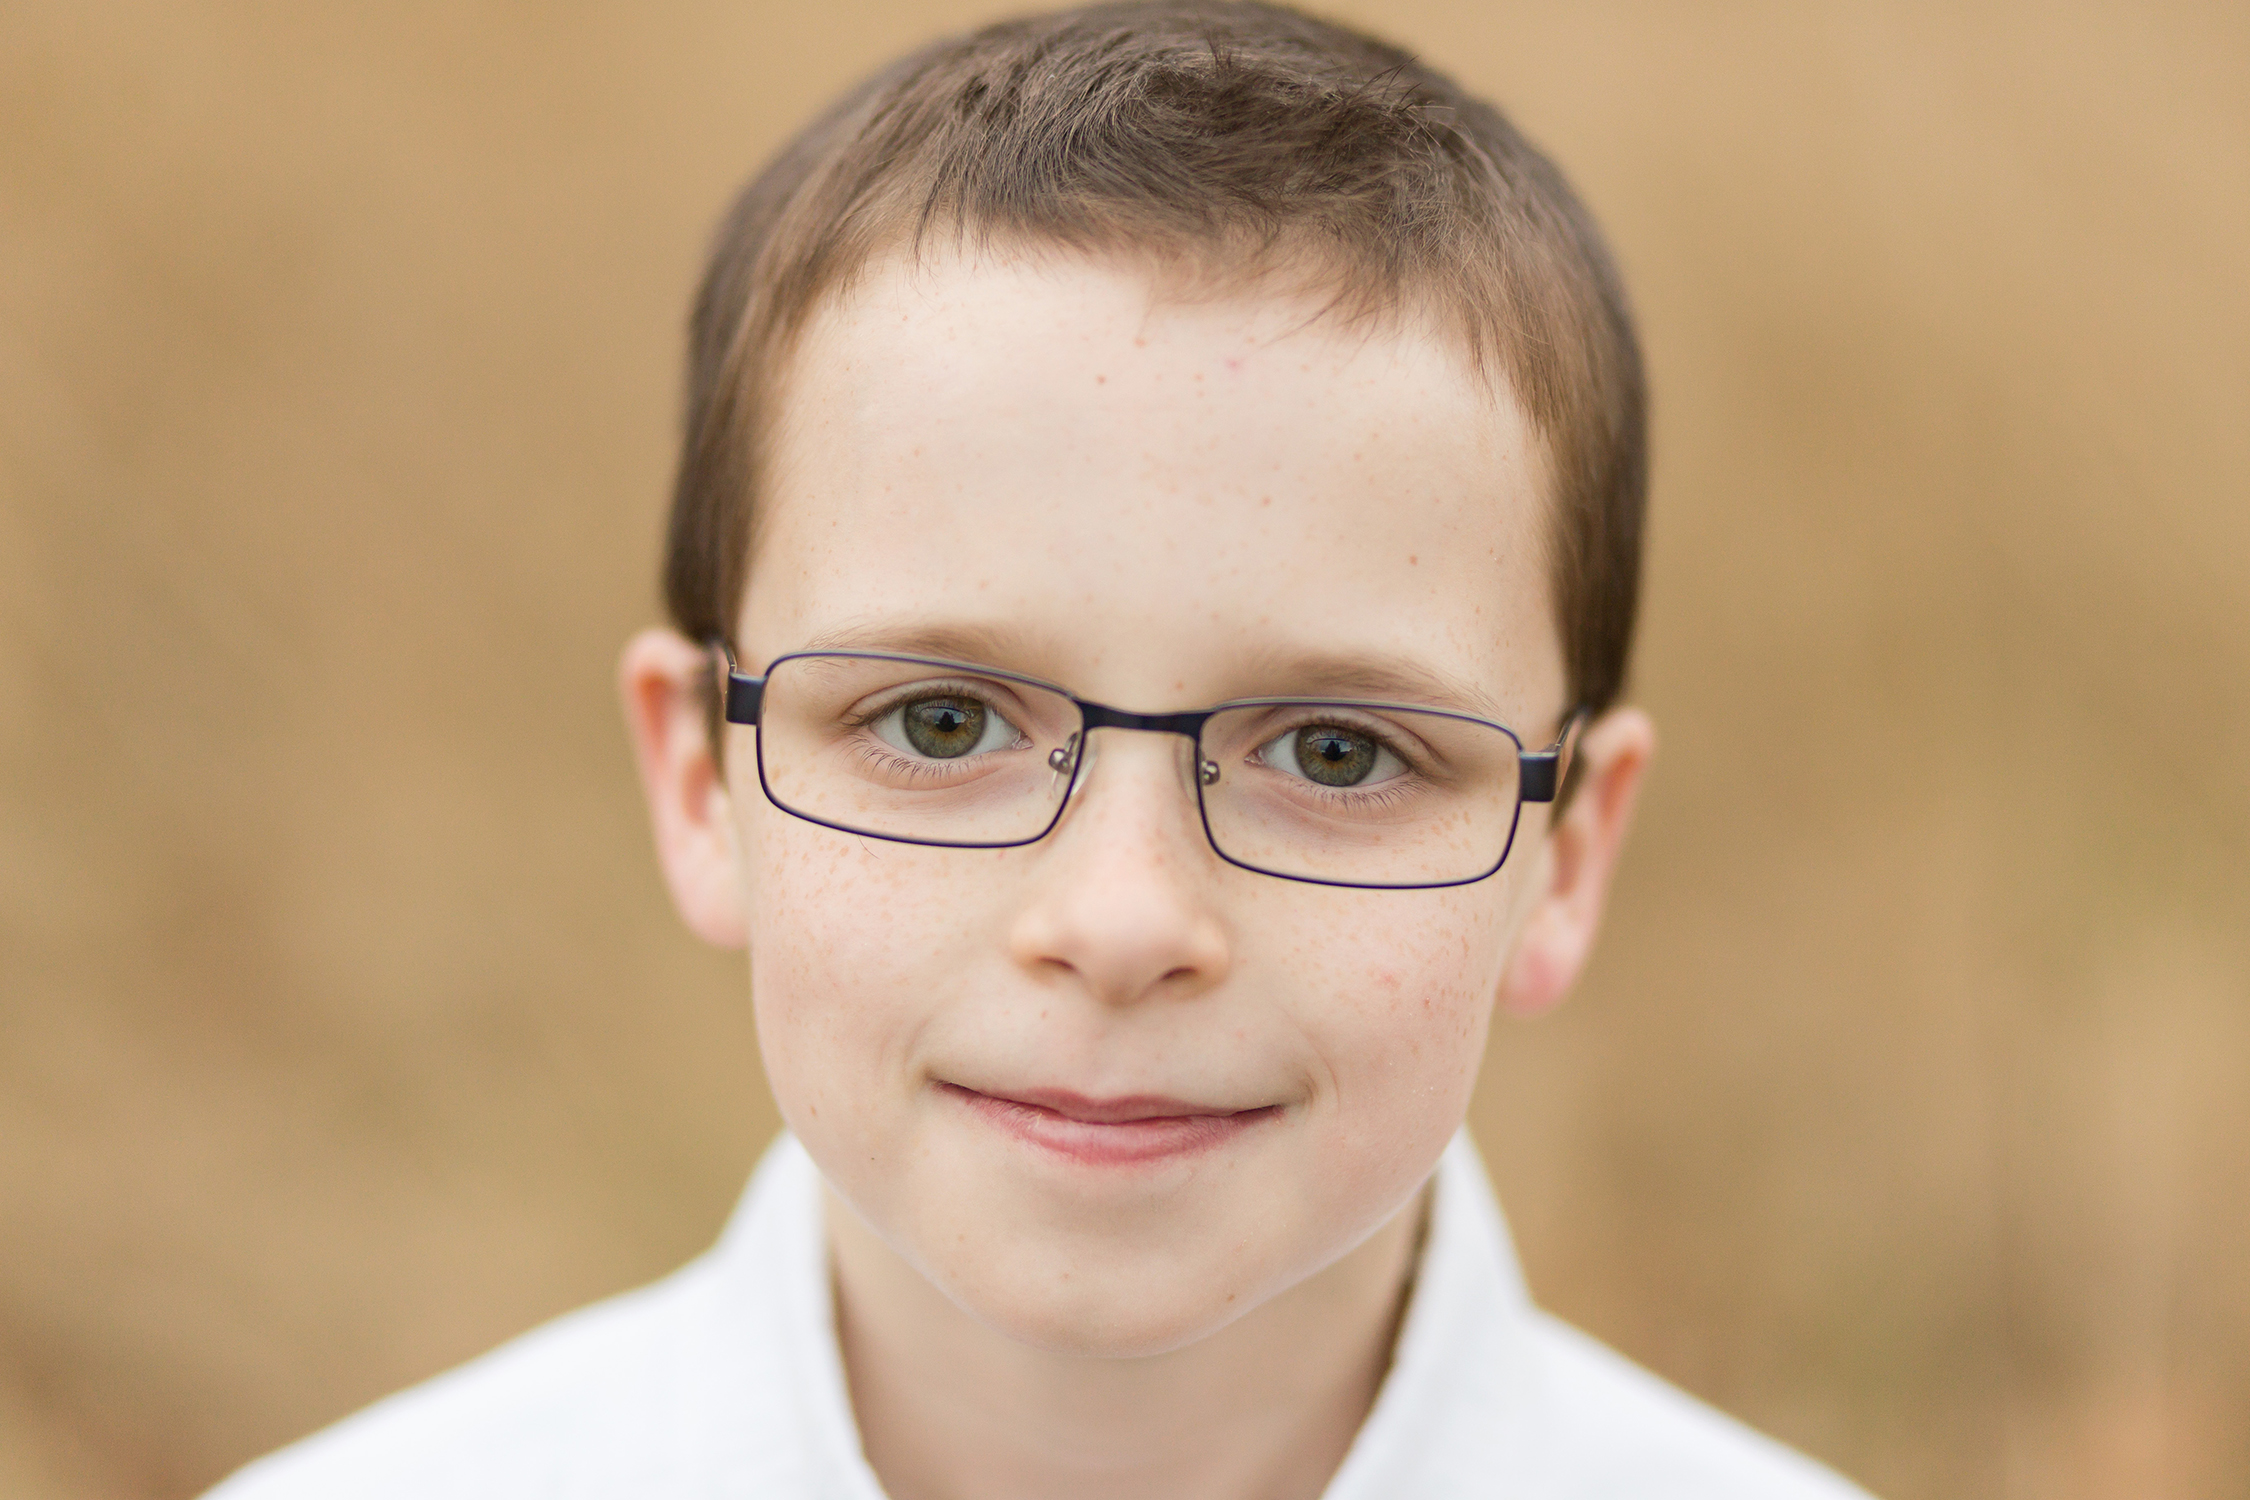 Young boy wearing glasses looking at camera | Kirkwood Family Photographer